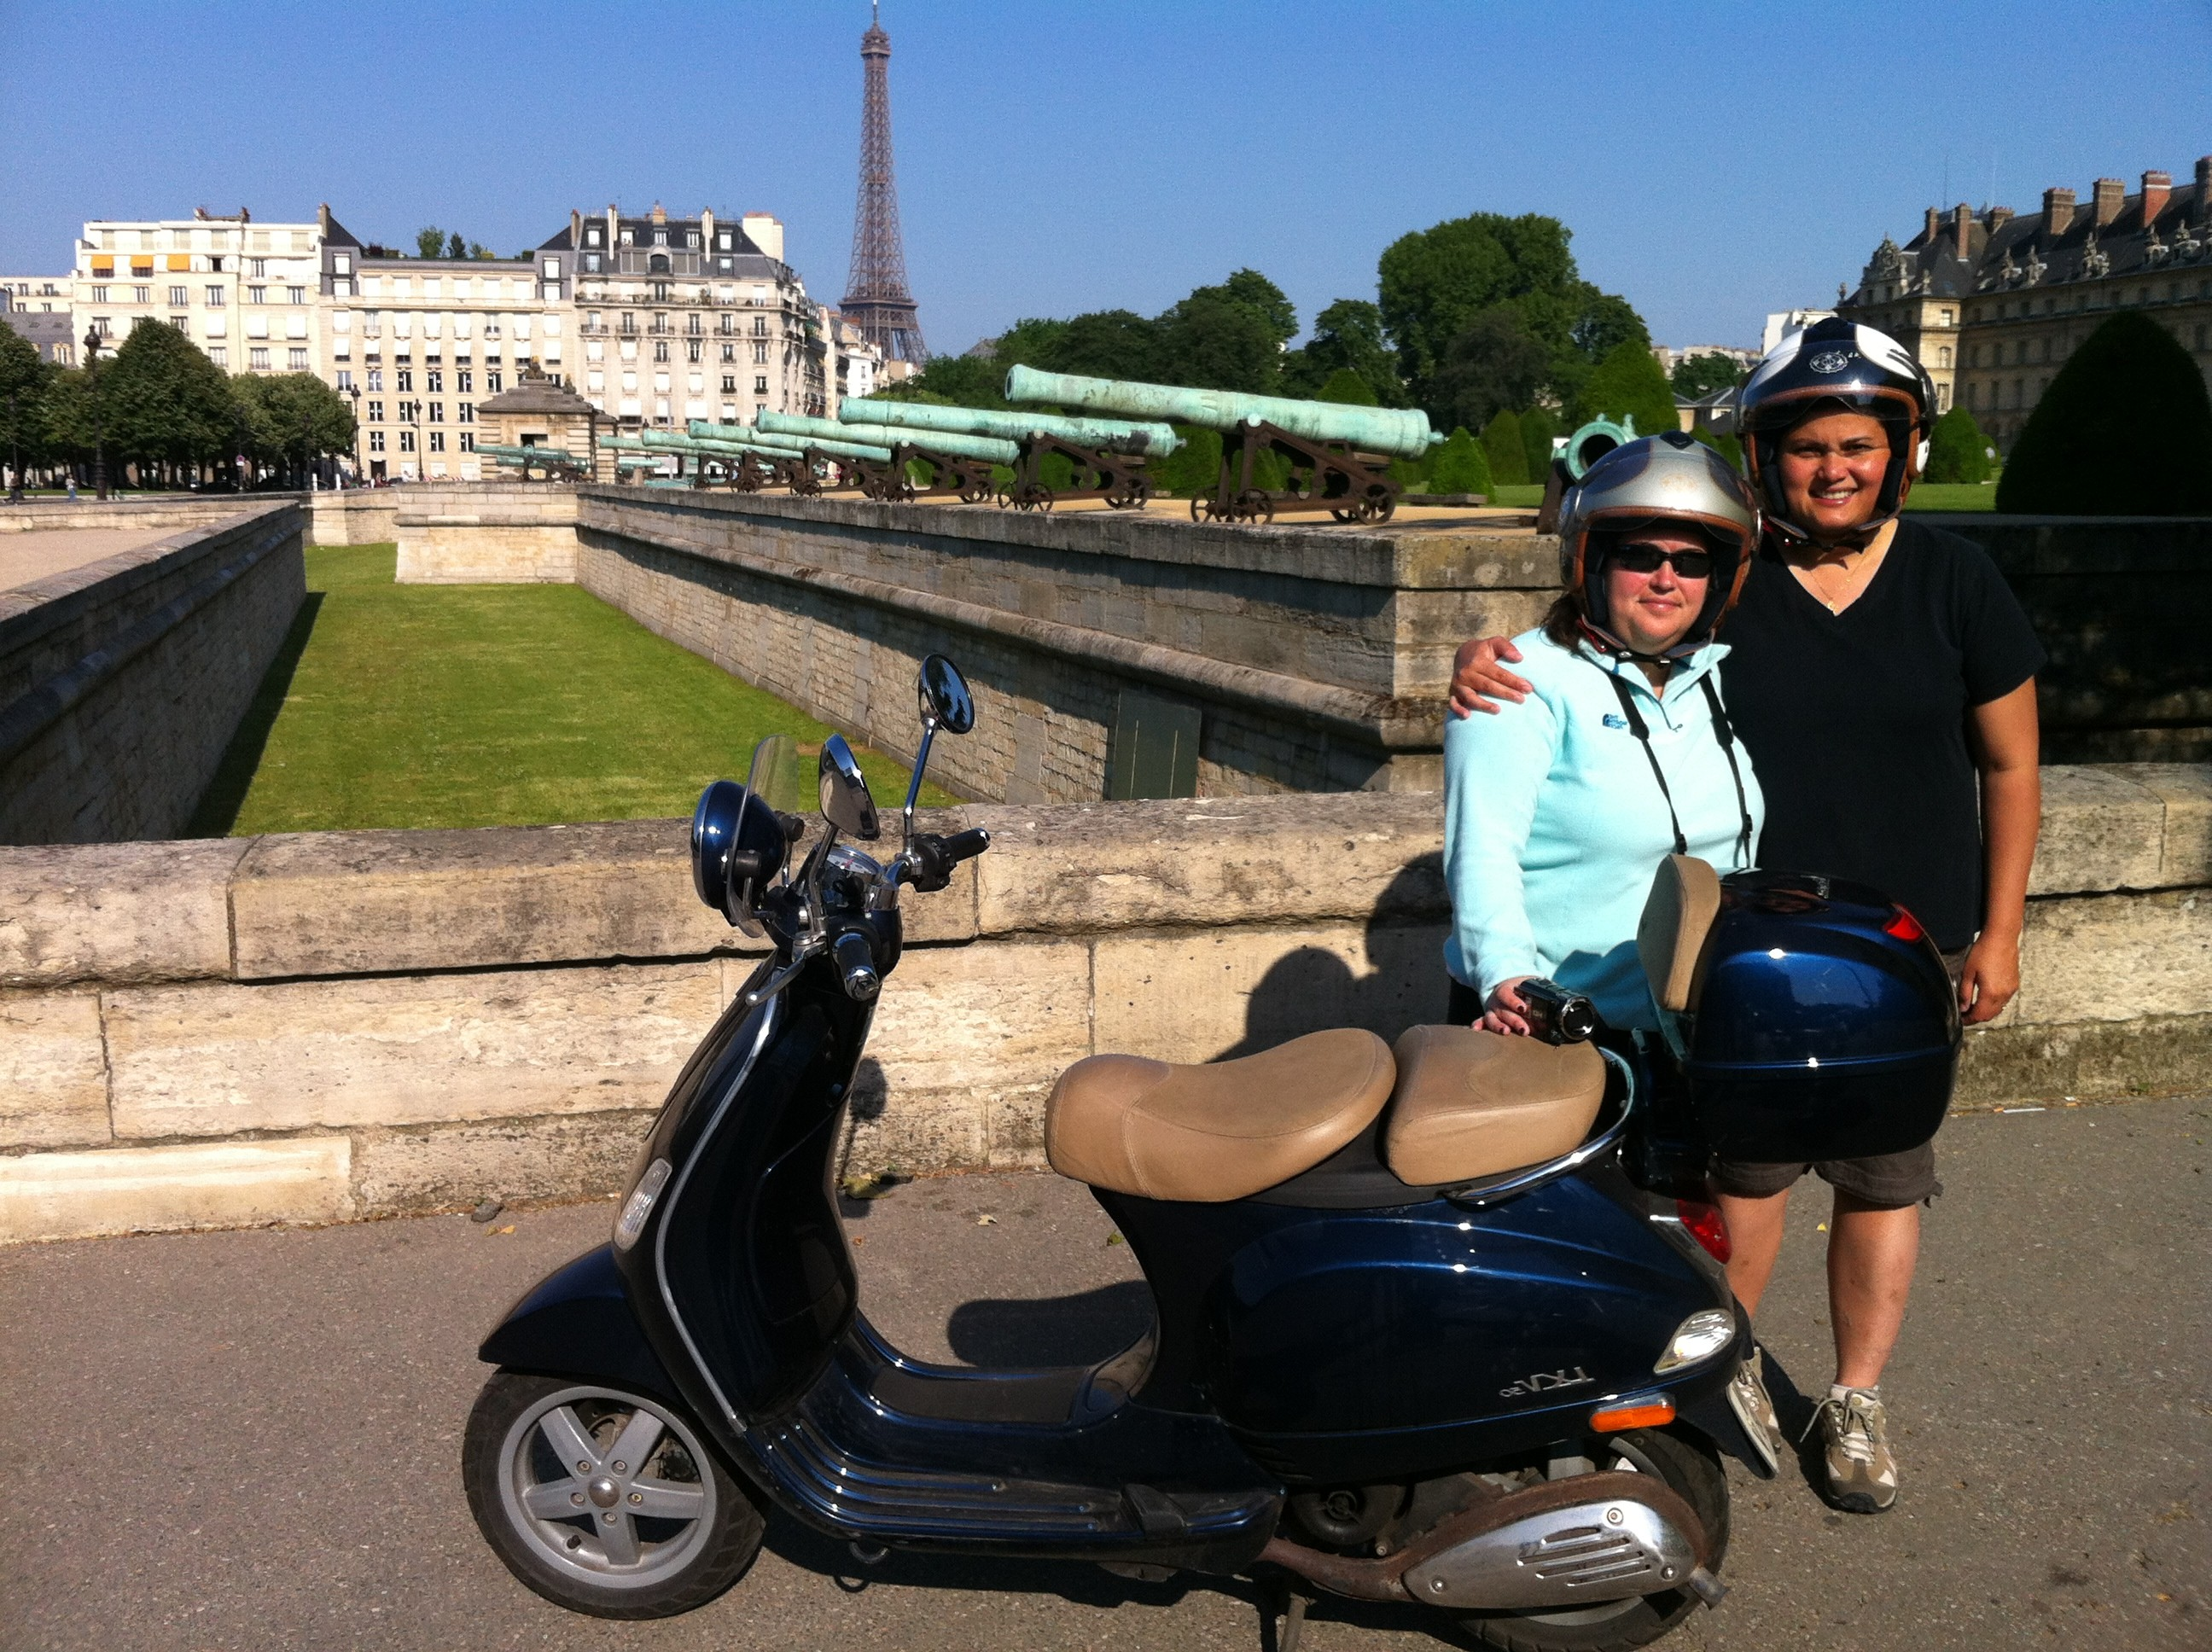 Invalides and the Eiffel tower by Vespa scooter - pictures of Paris France